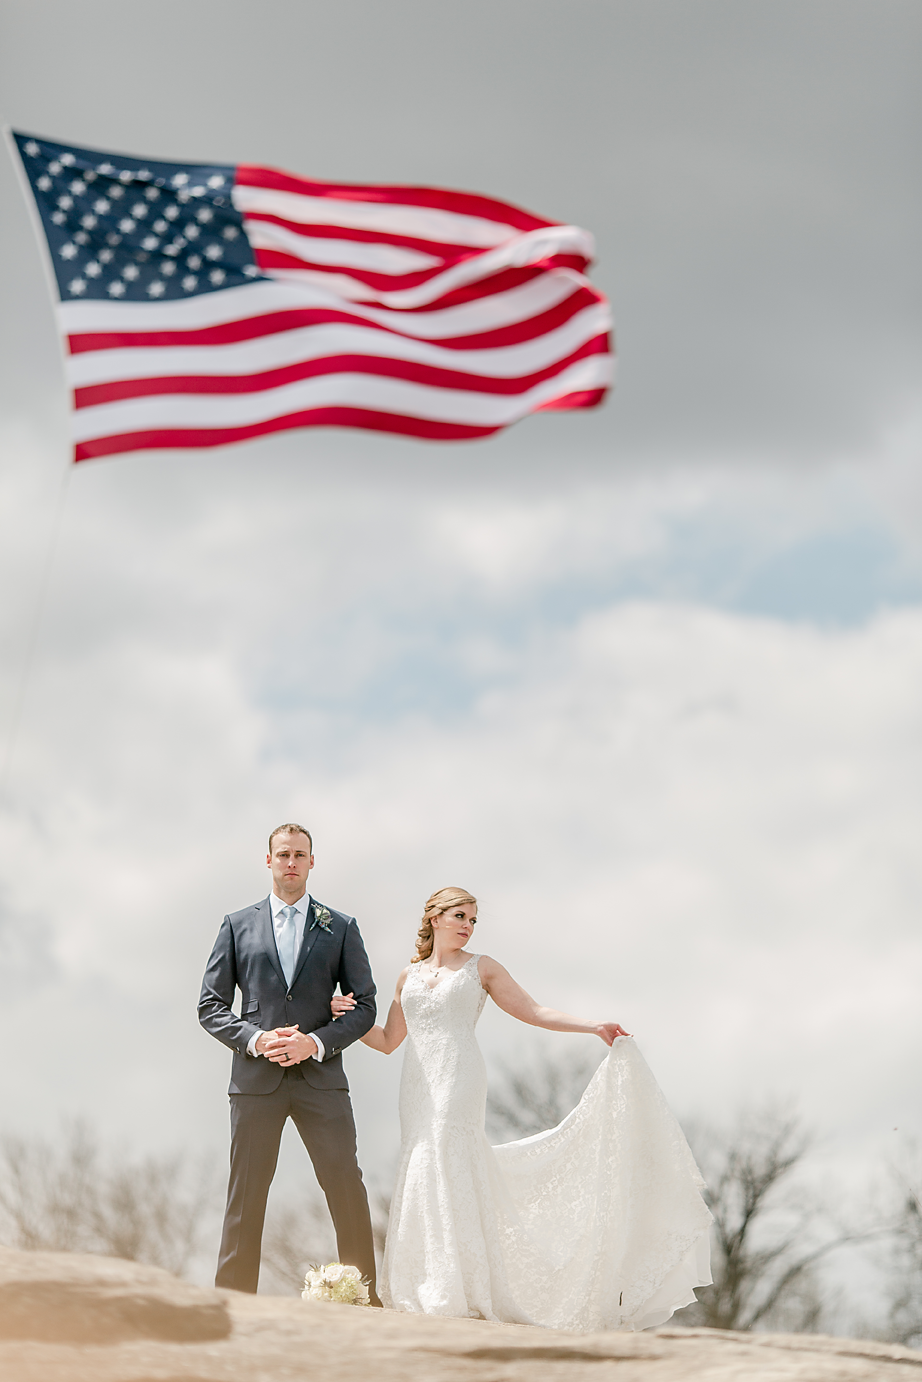 Dallas Wedding Photographer Glassy Mountain Chapel Greenville South Carolina scottish wedding bride and groom american flag kate marie portraiture.png